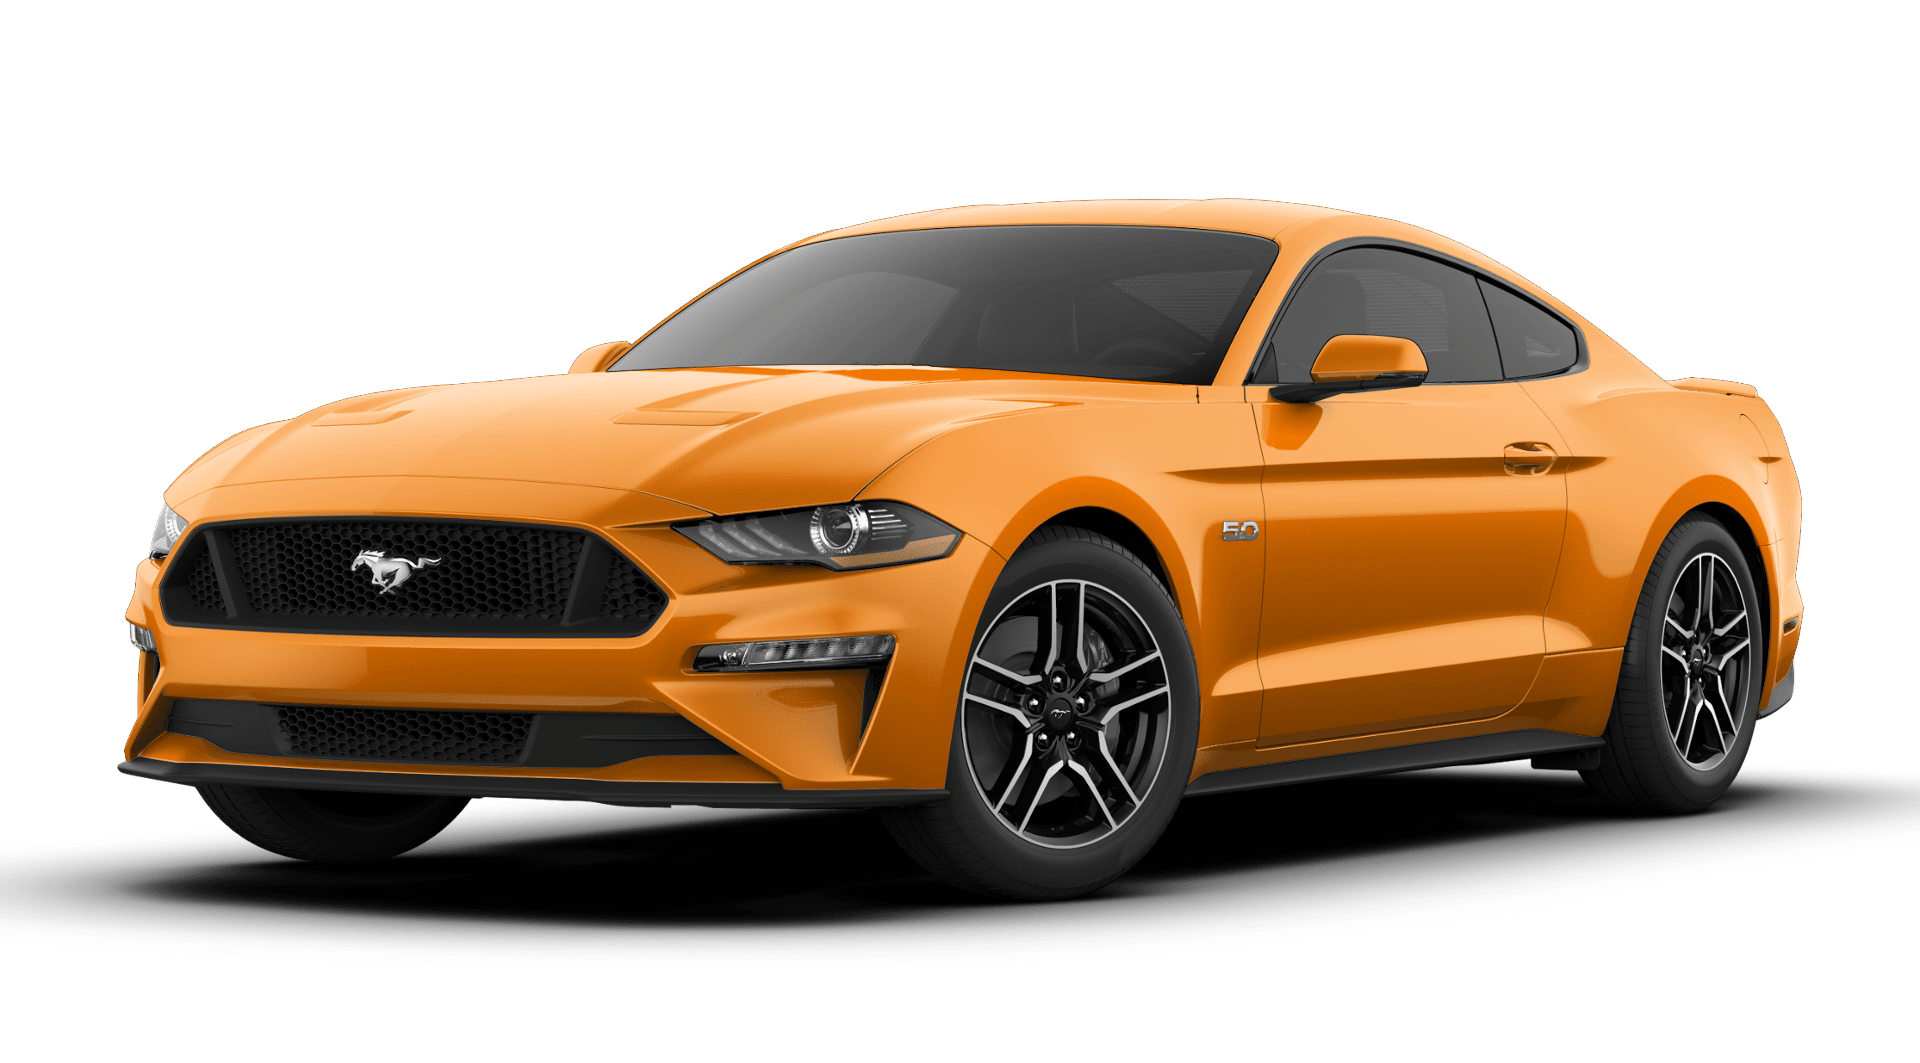 2019 Ford Mustang GT Premium Orange Exterior Front View